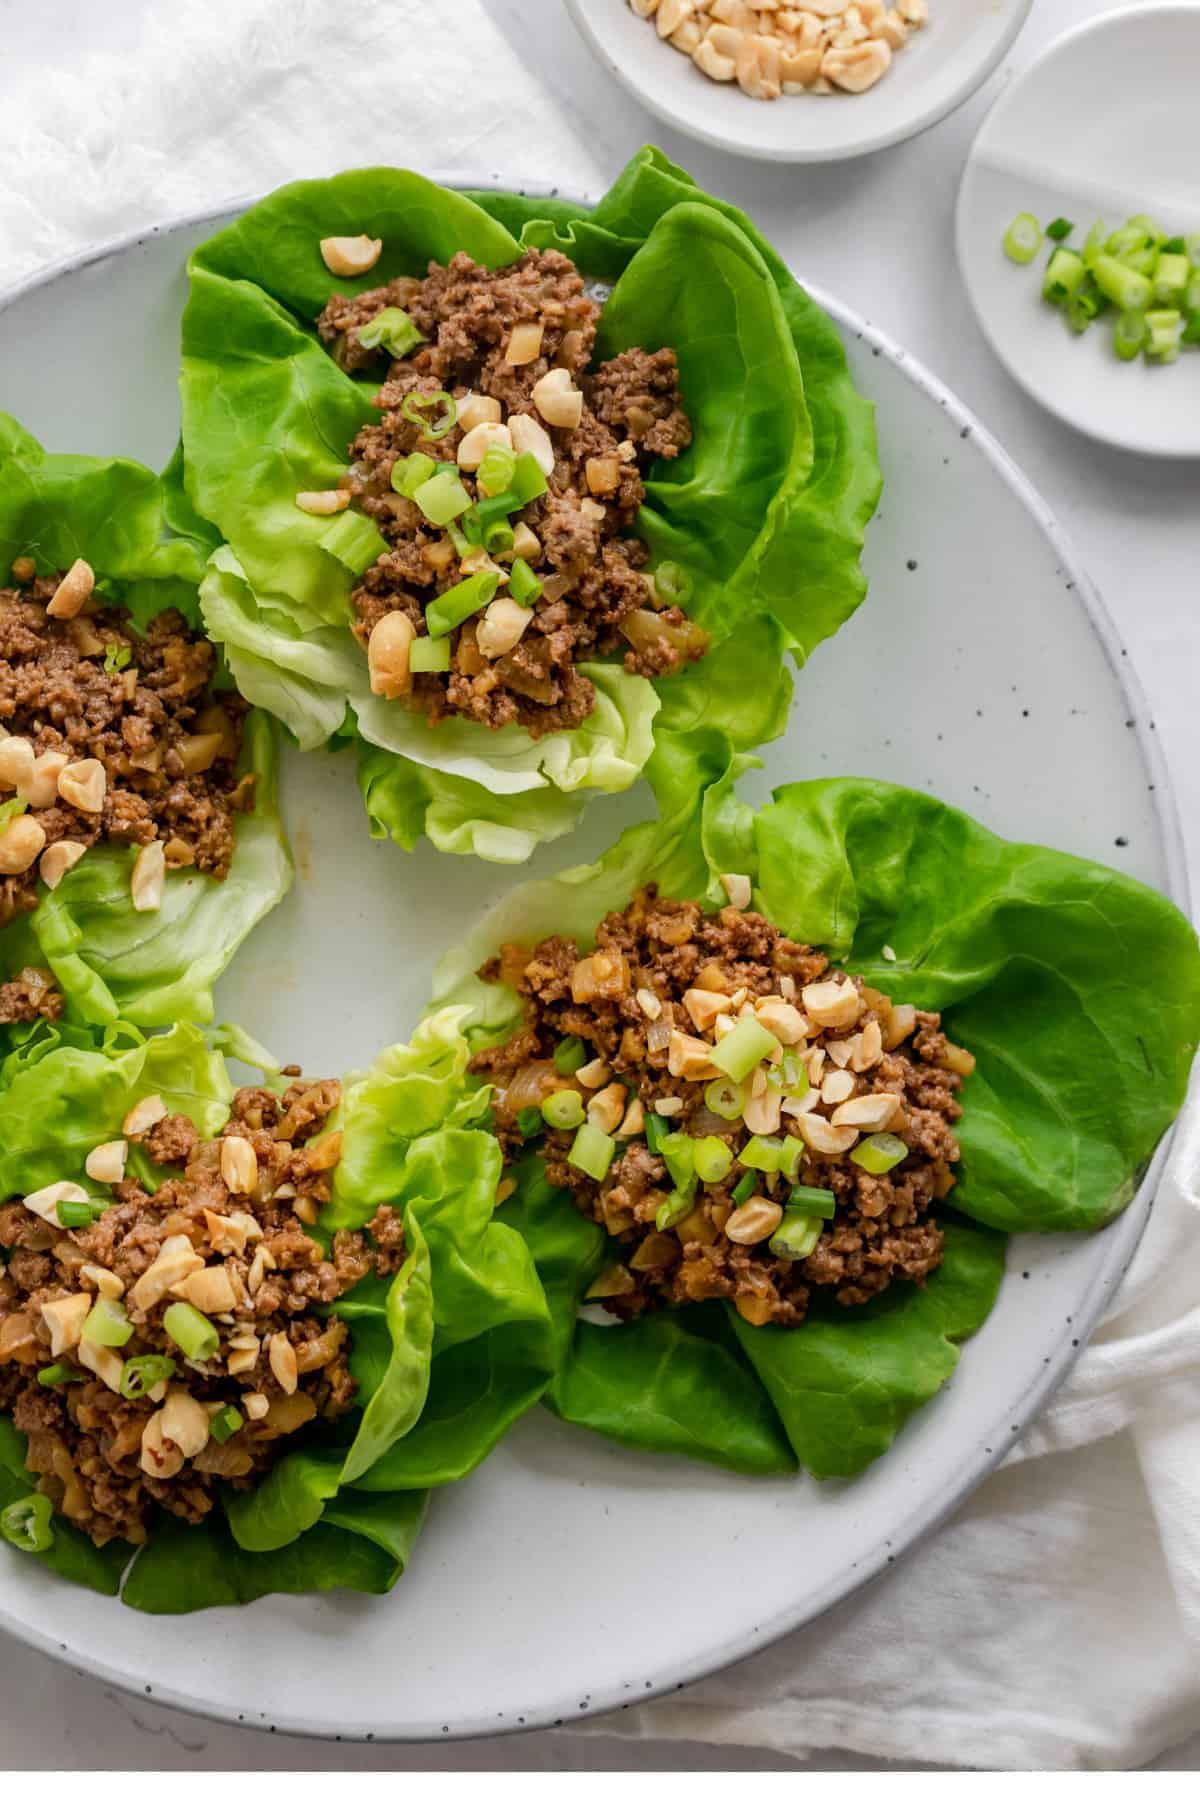 Round plate with four butter lettuce pieces topped with the ground beef mixture